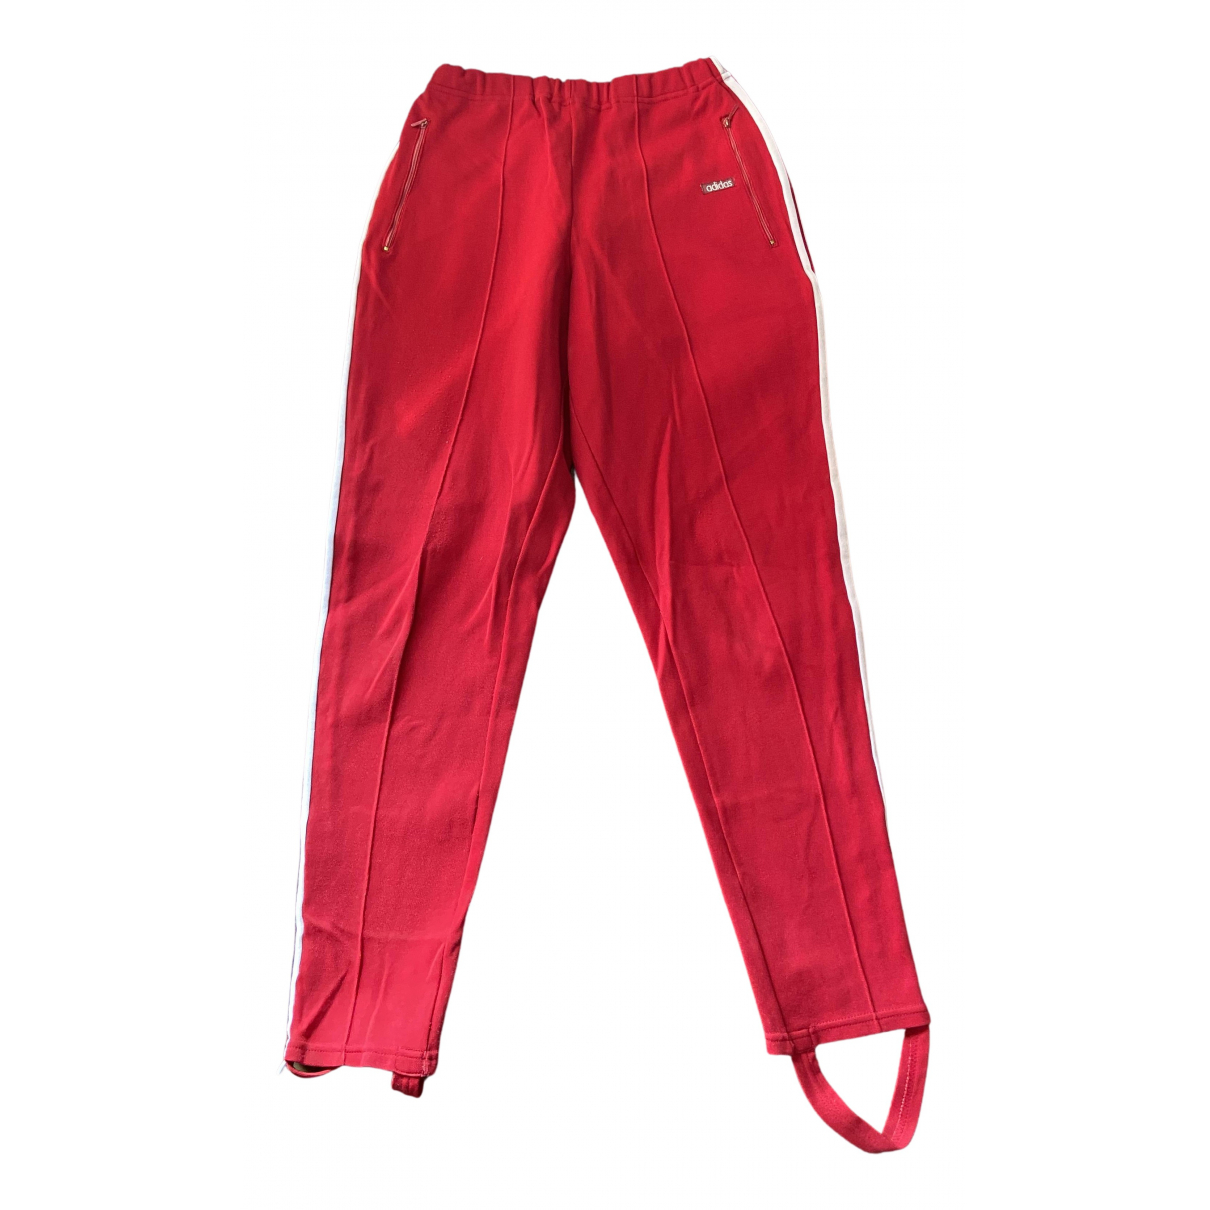 Adidas N Red Cotton Trousers for Women XL International